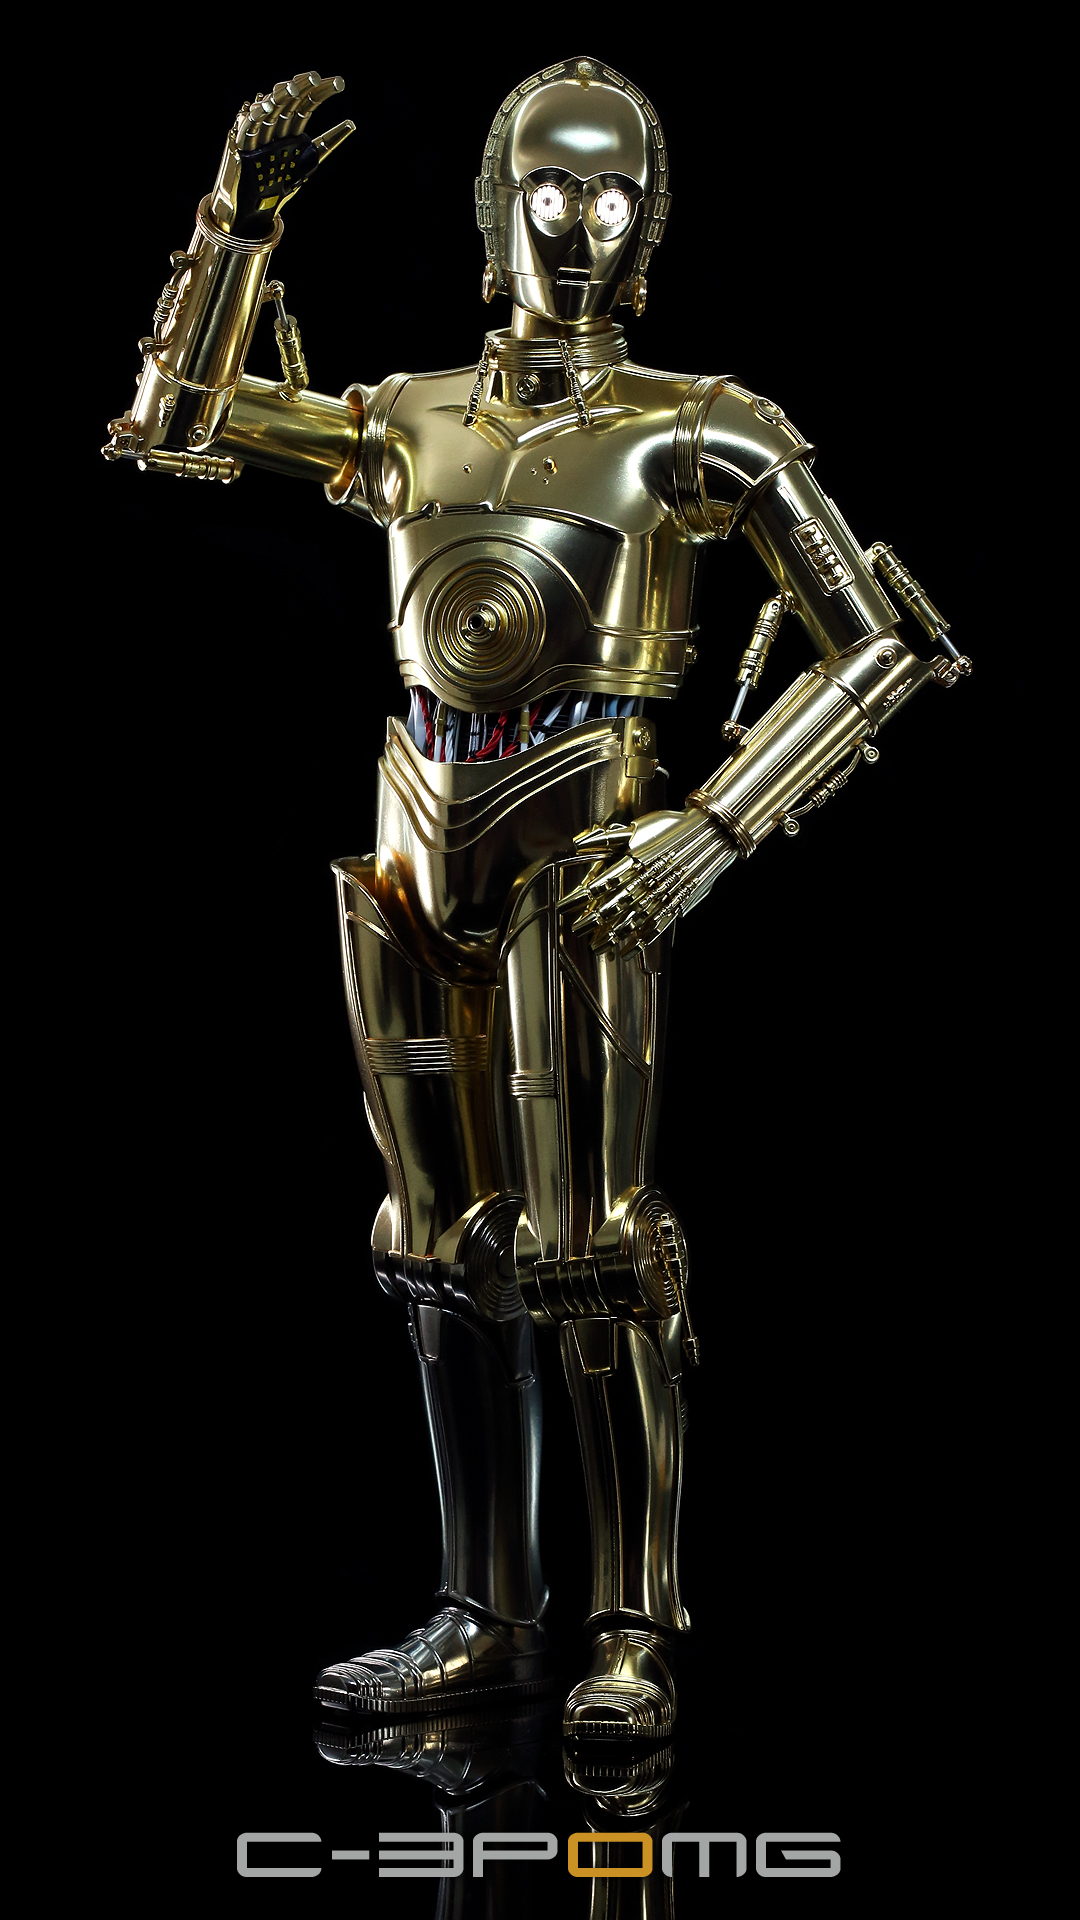 [Bandai] Star Wars: C-3PO - Perfect Model 1/6 scale - LANÇADO!!! - Página 2 C-3PO1035_zps8b705645